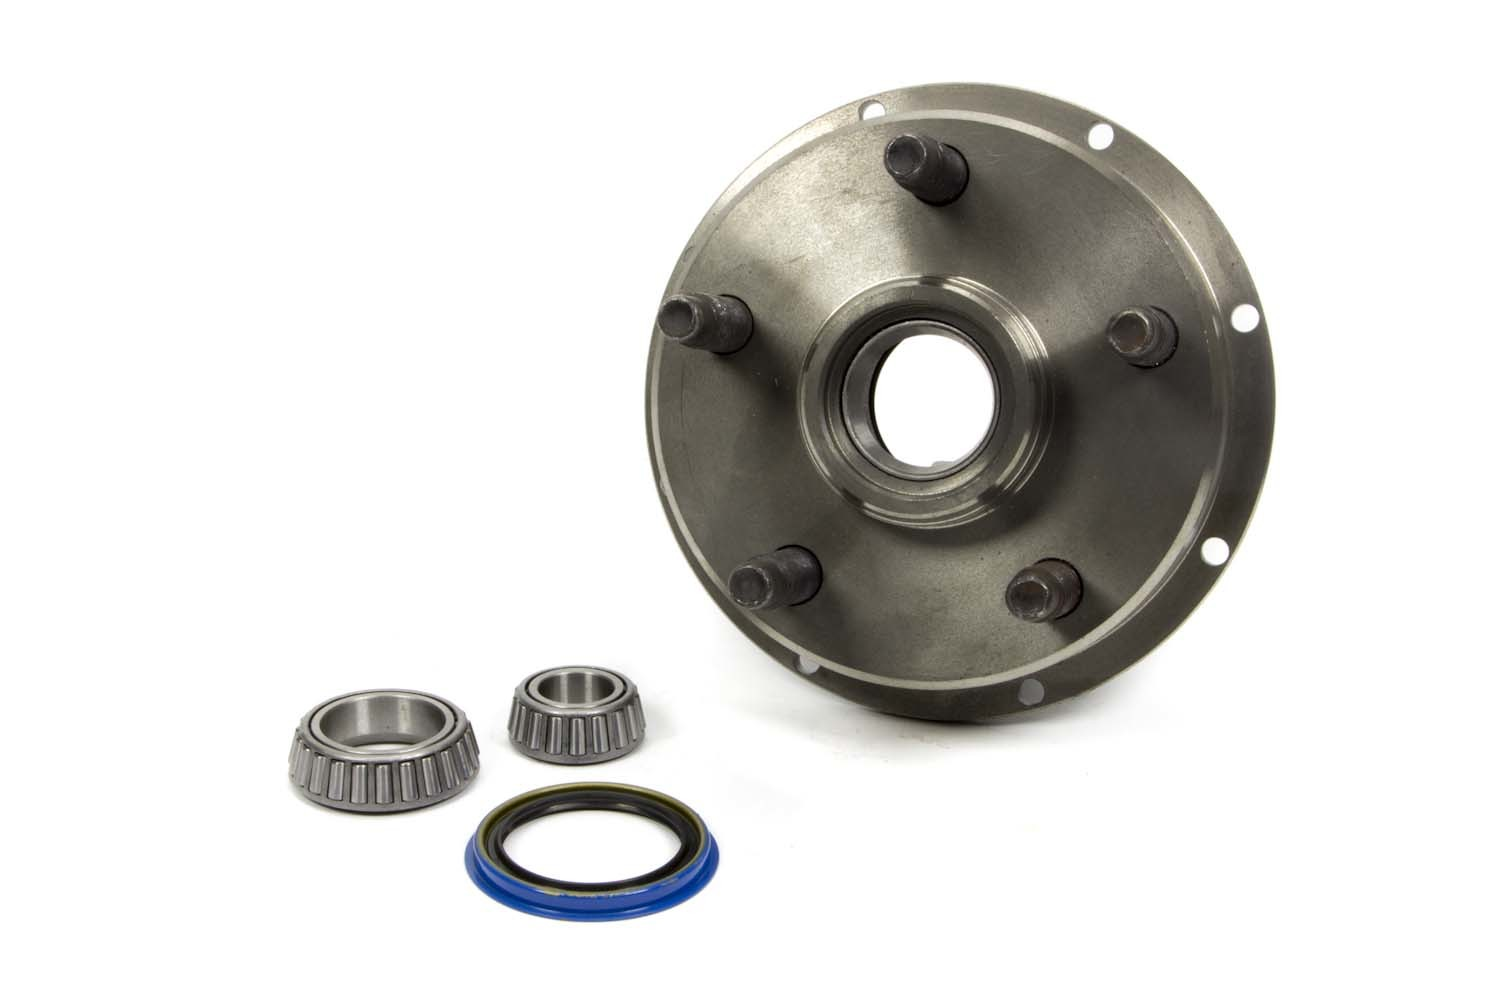 Howe 205350 Wheel Hub, Front, Stock Replacement, 5 x 5.00 in Wheel, 5/8-11 in Stud, 8 x 7 in Rotor, Steel, Natural, Kit